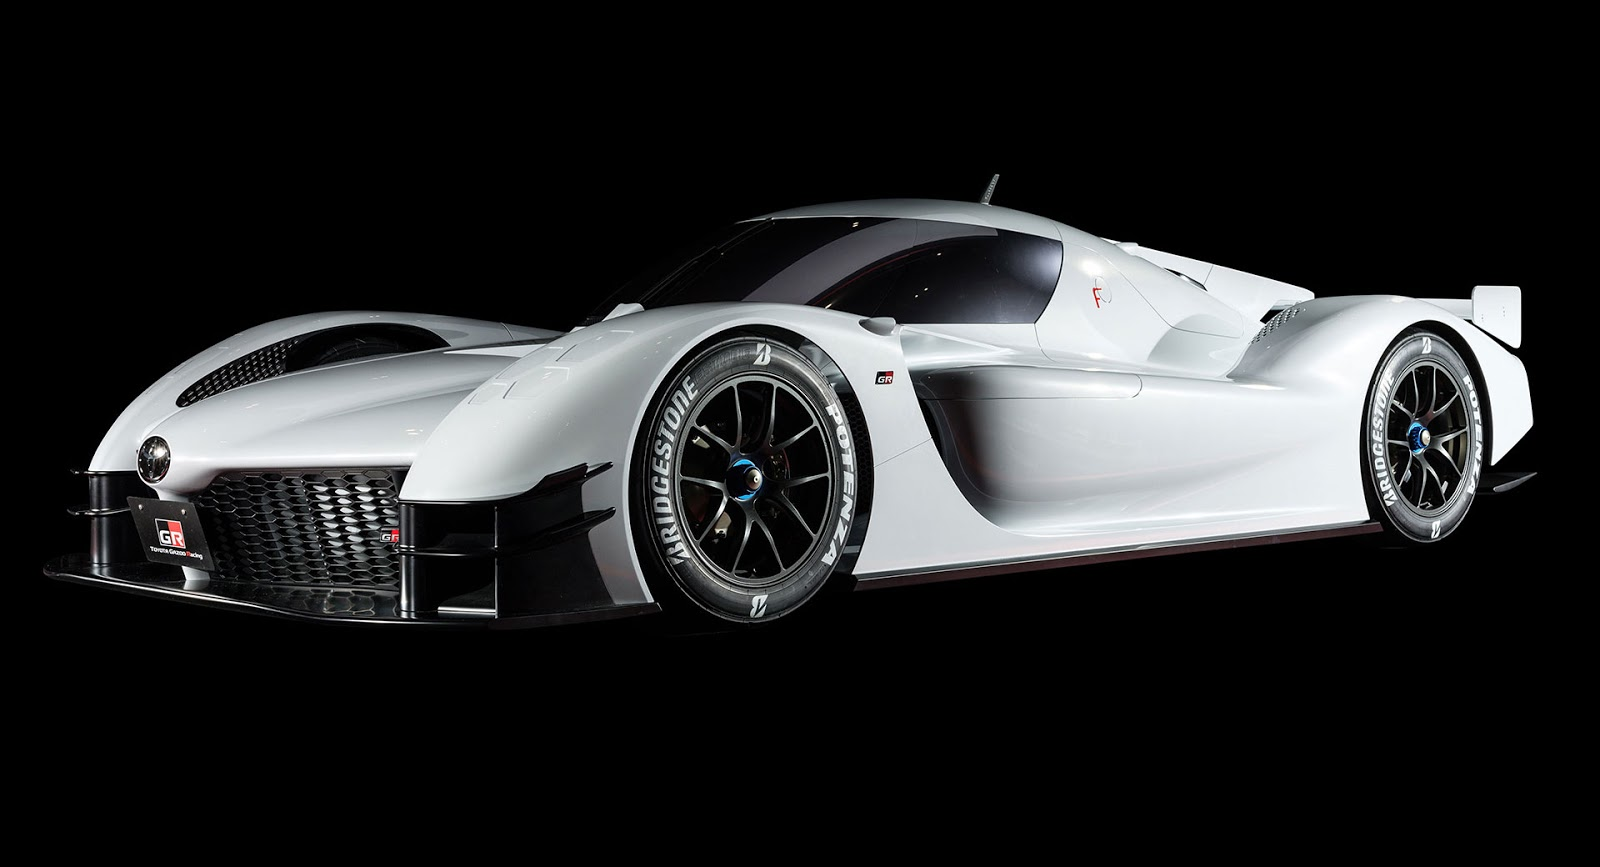 This Is Toyota's 1000-Horsepower LMP1-Inspired Hypercar Concept